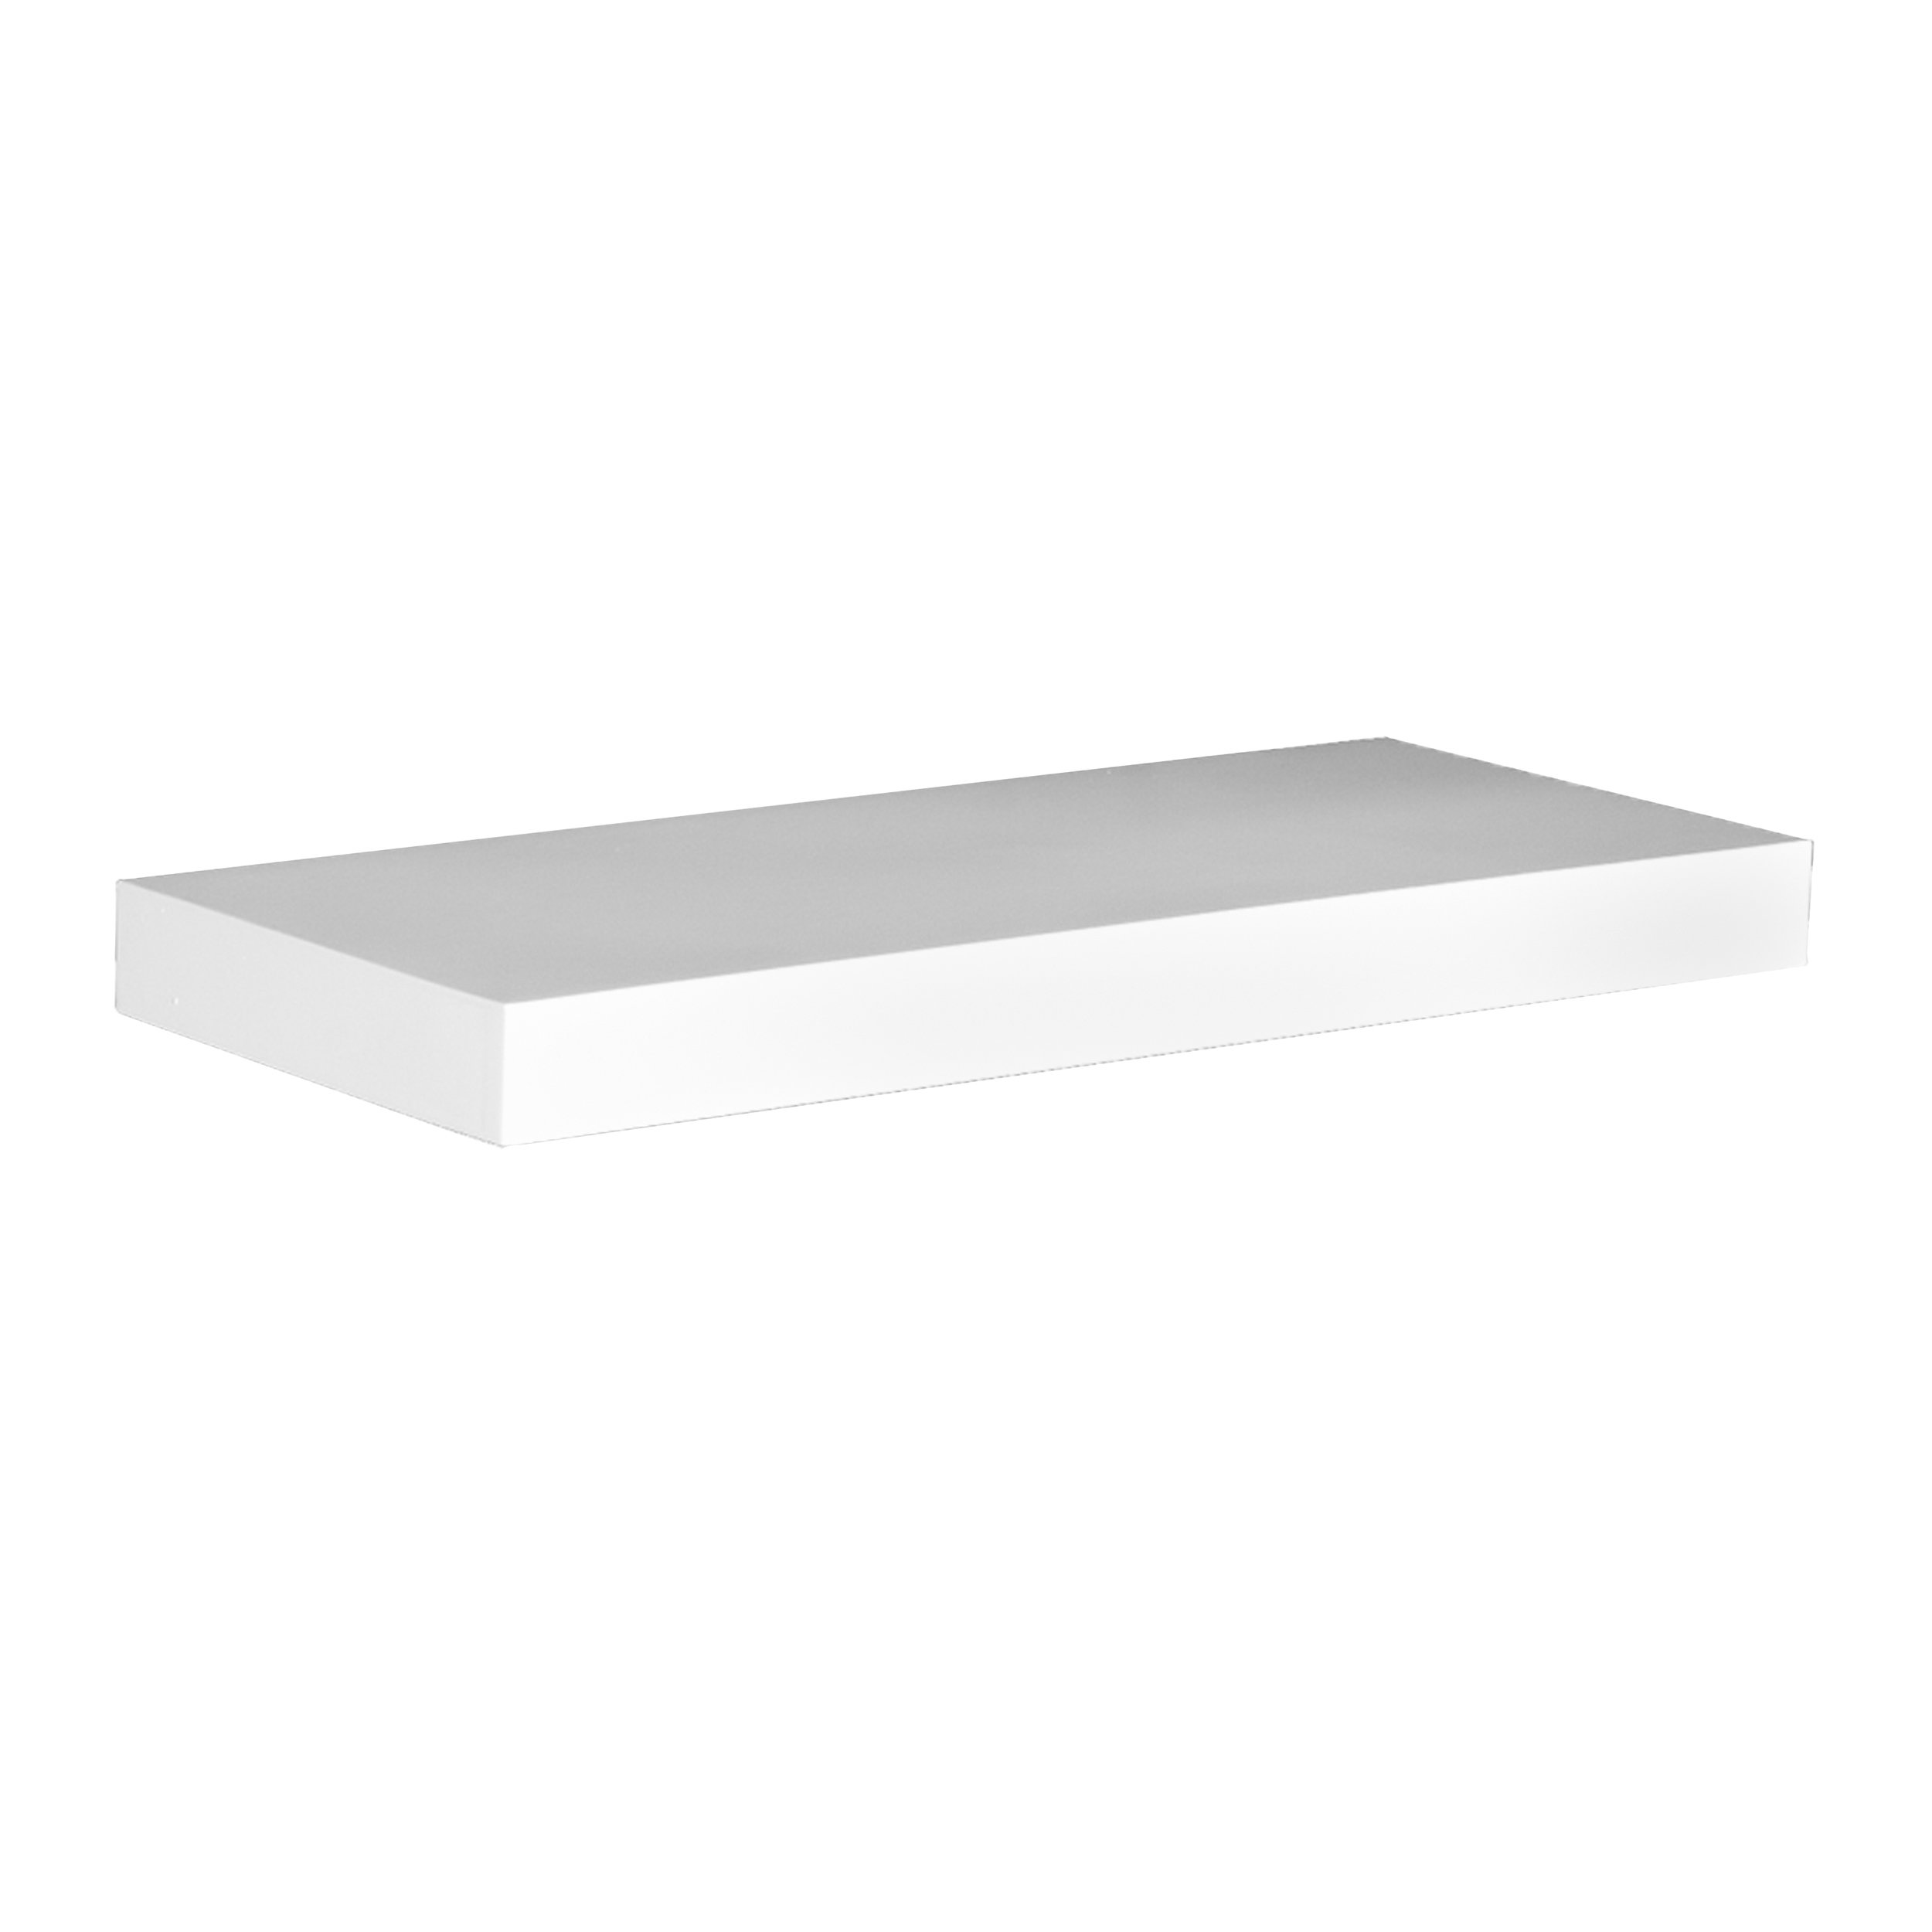 isabella floating shelf reviews joss main the company narrow white garage racking bunnings hanging wall shelves sliding pan holder wide bookshelf ideas for bedroom mounted